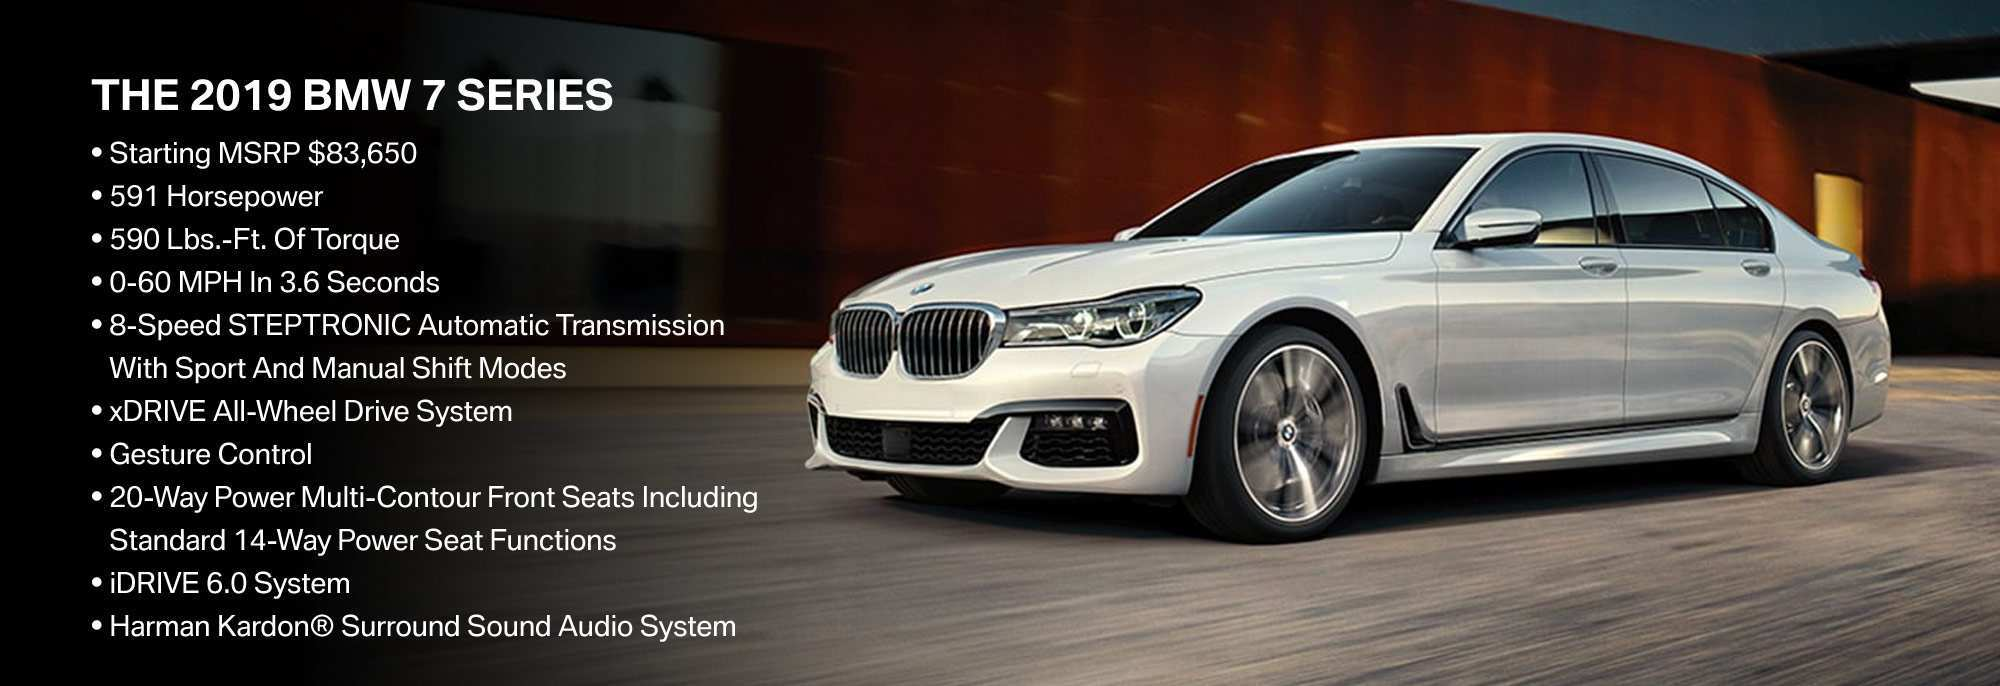 12 All New 2019 Bmw 7 Series Perfection New Price And Review